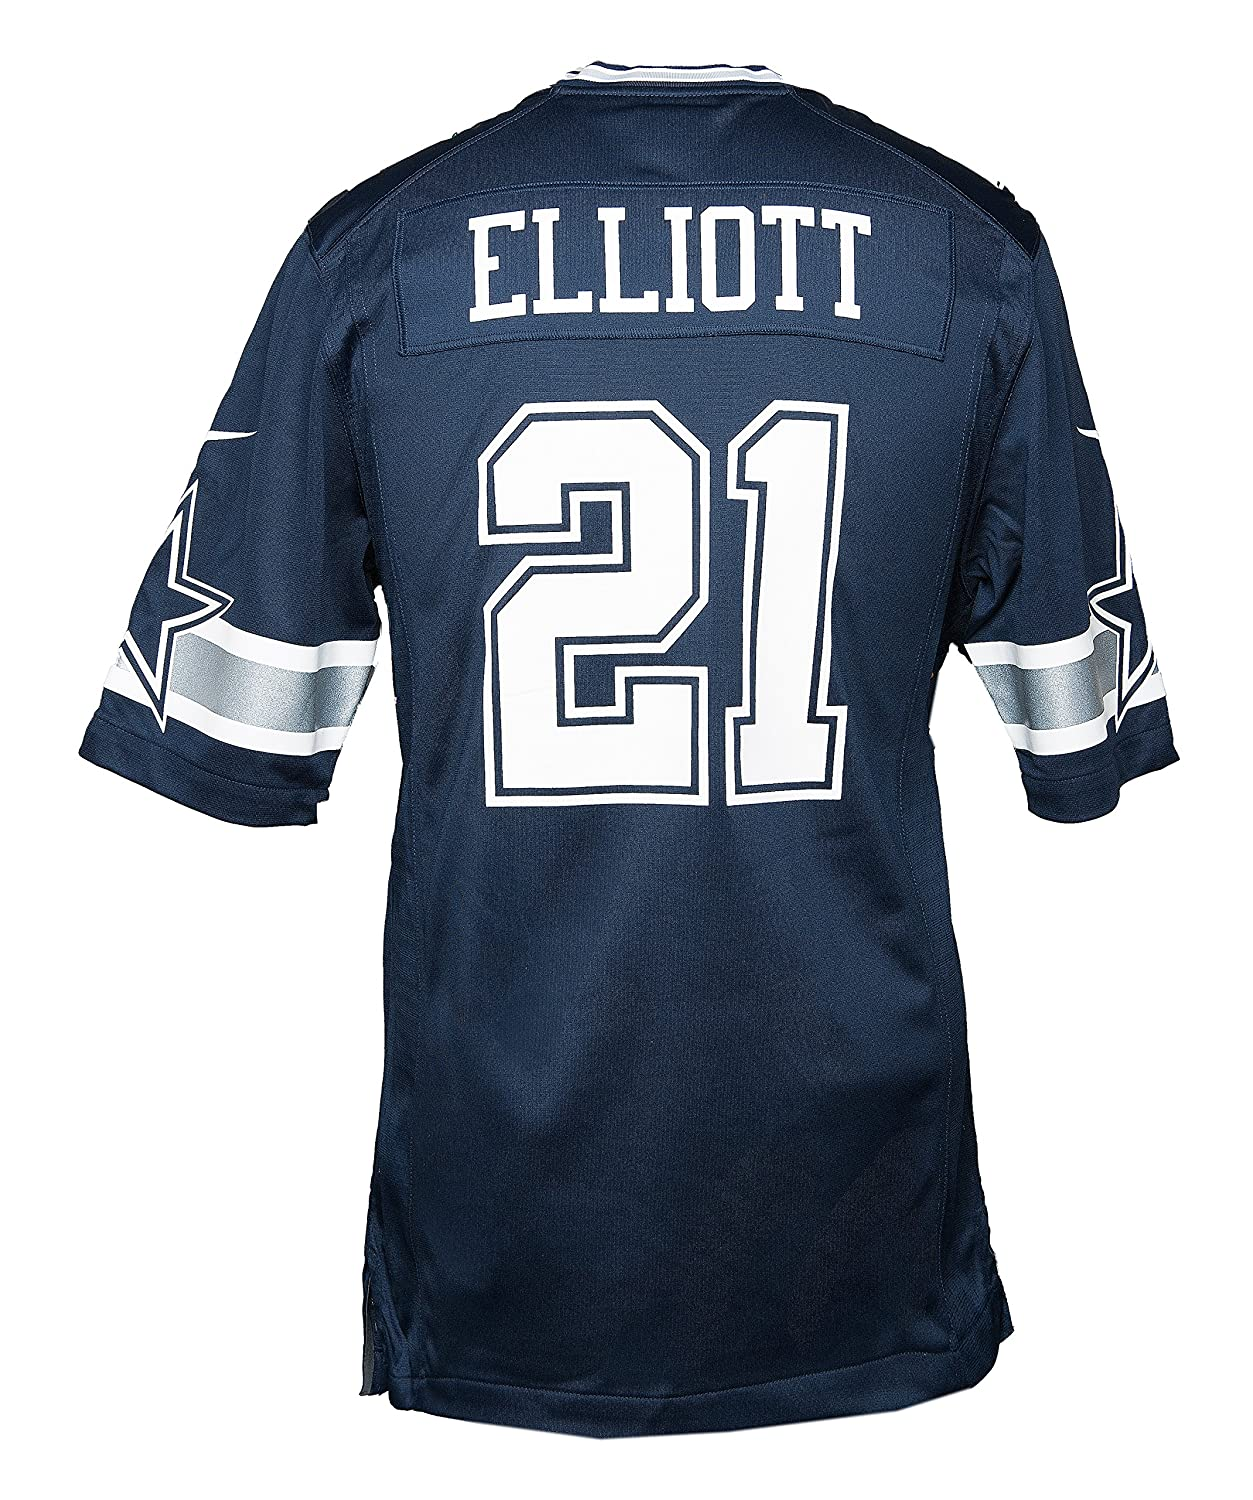 new product e8e72 322b6 Dallas Cowboys Nike Ezekiel Elliott NFL Jersey - Navy/White - Medium